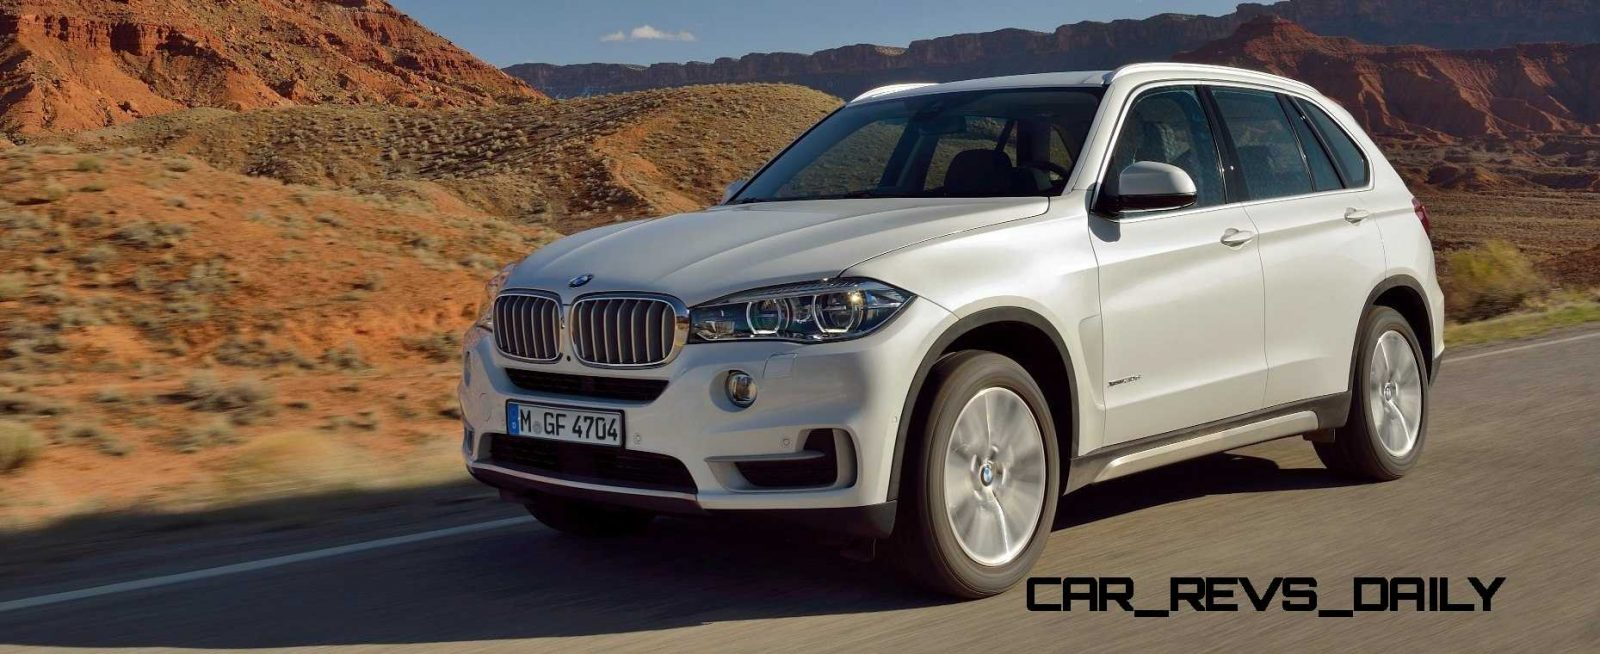 2014 bmw x5 price autos weblog. Black Bedroom Furniture Sets. Home Design Ideas